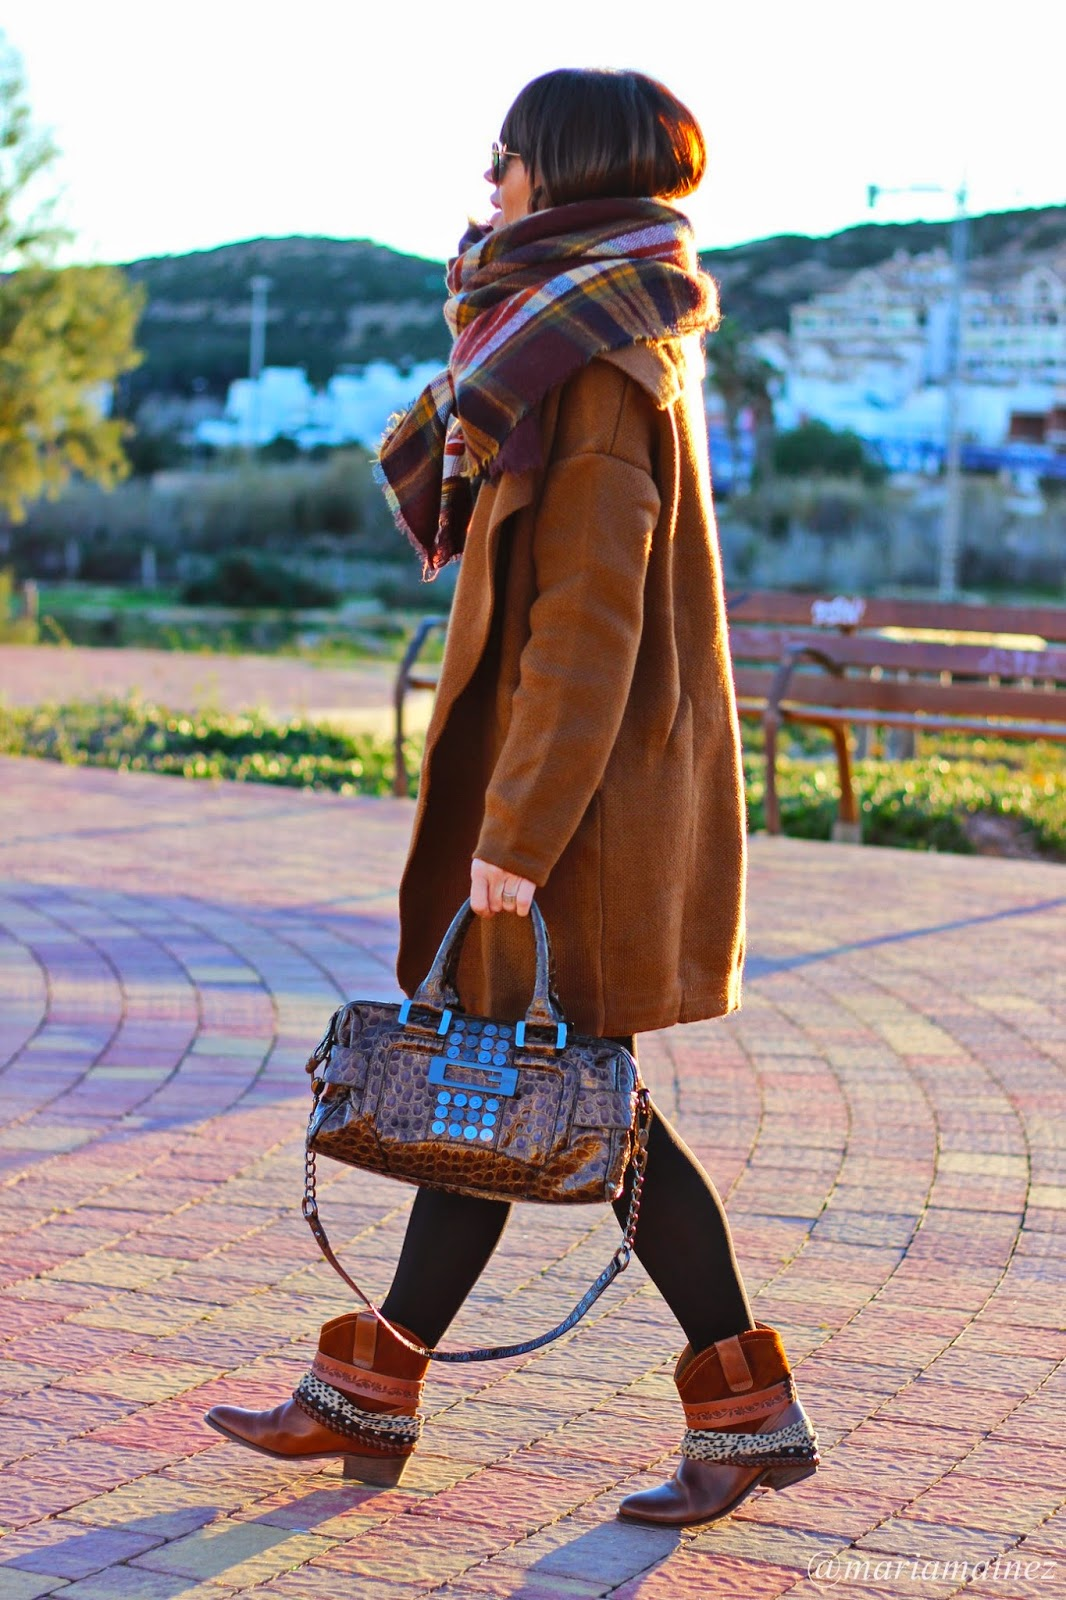 Streetstyle 2015 - Fashion Blogger - Cardigan Sheinside - Manta Zara